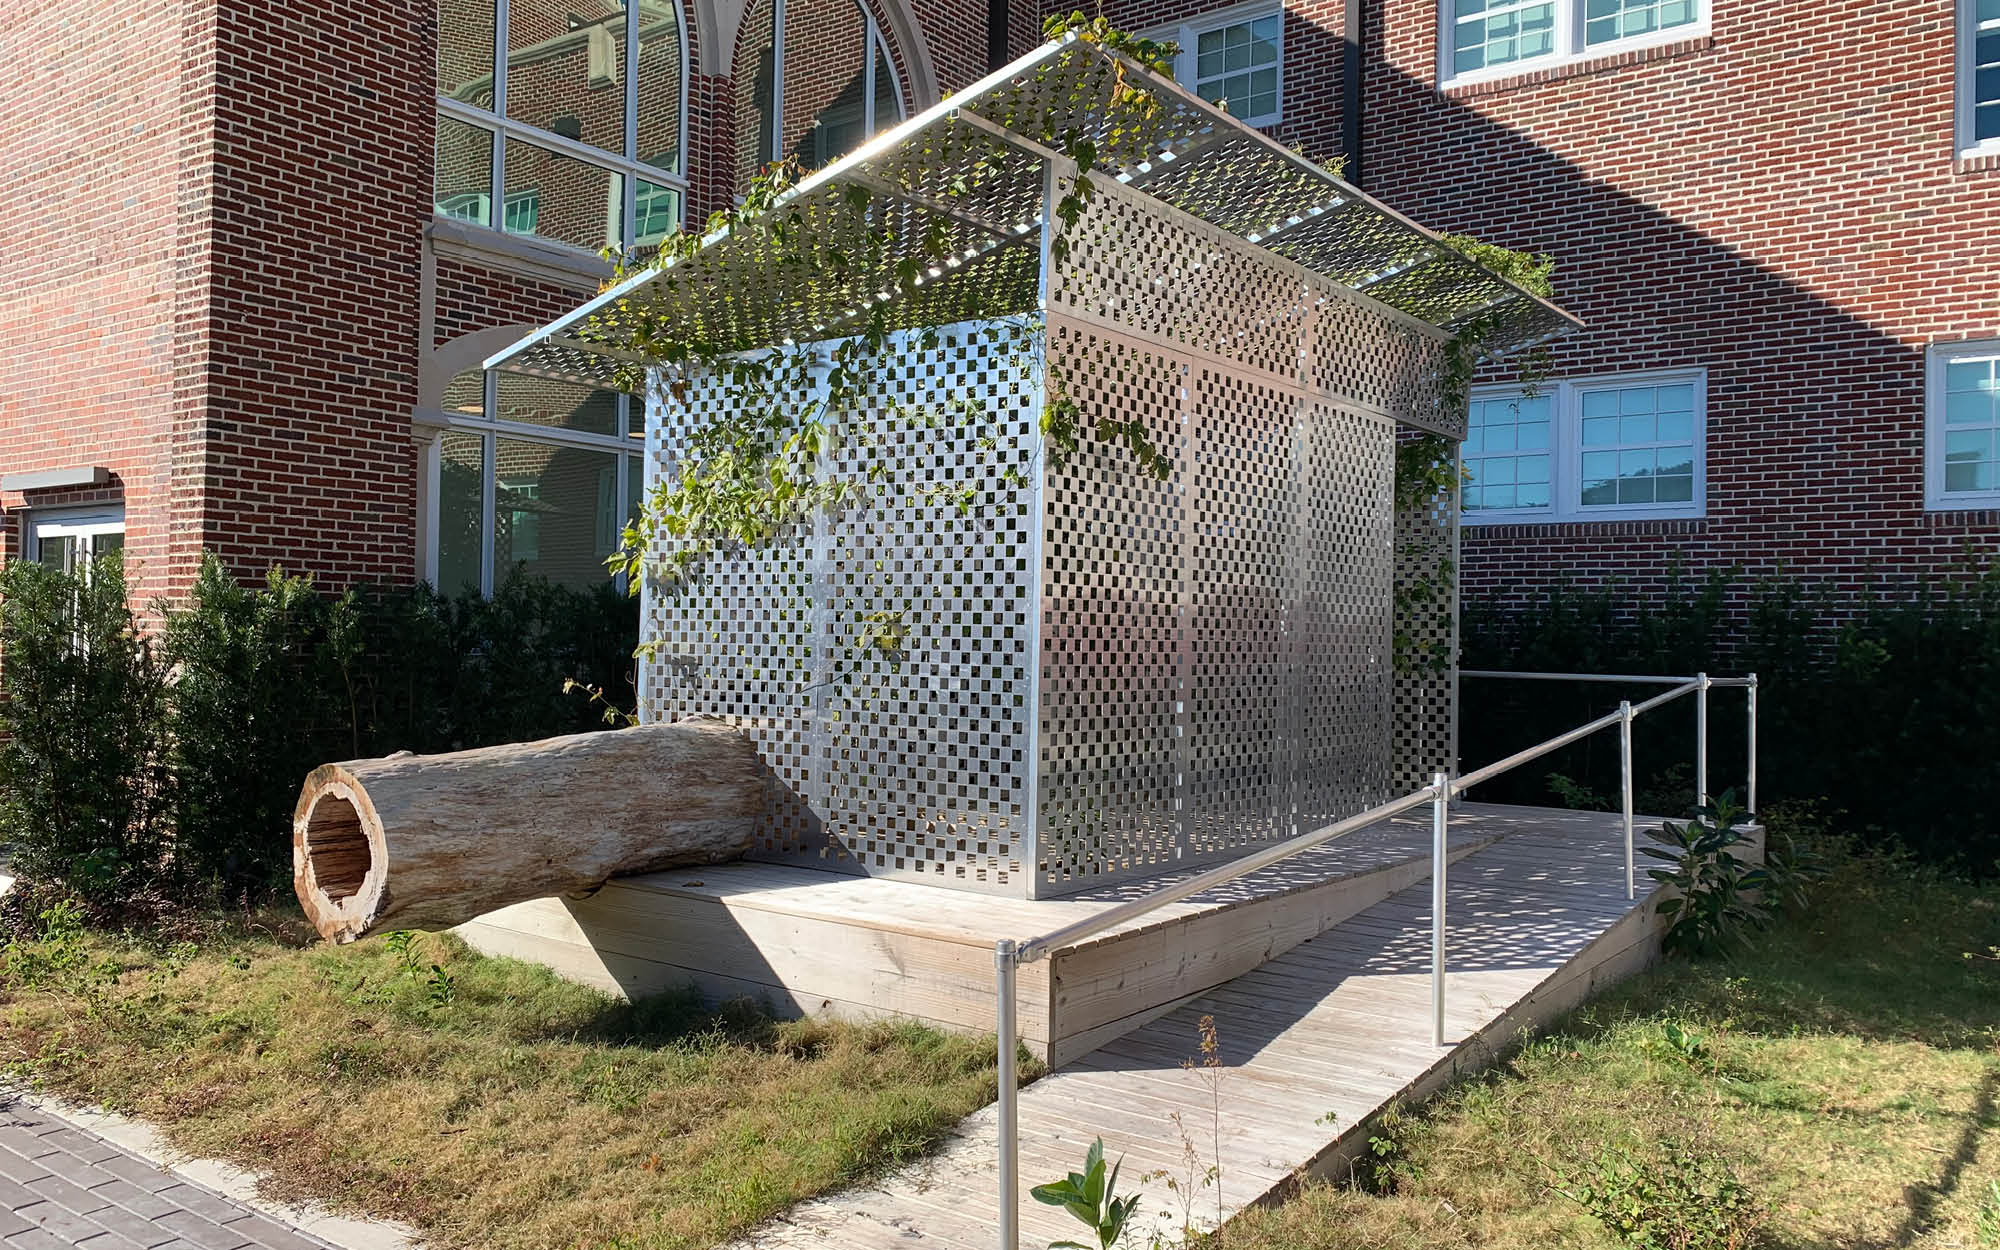 JPW3's Zen Jail is a site specific art installation at Sarasota Art Museum